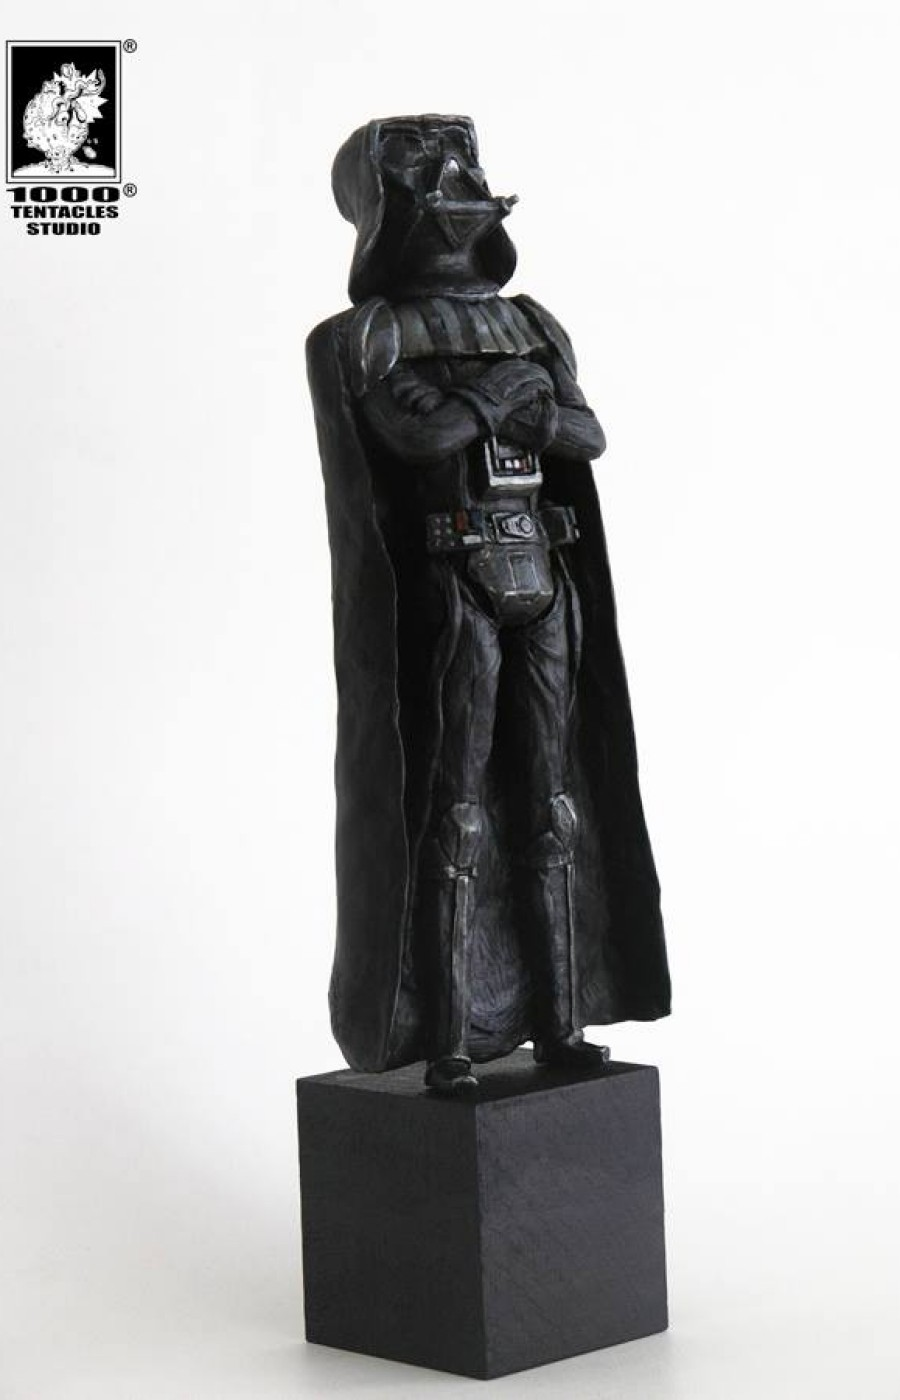 1000Tentacles Star Wars series Darth Vader 2